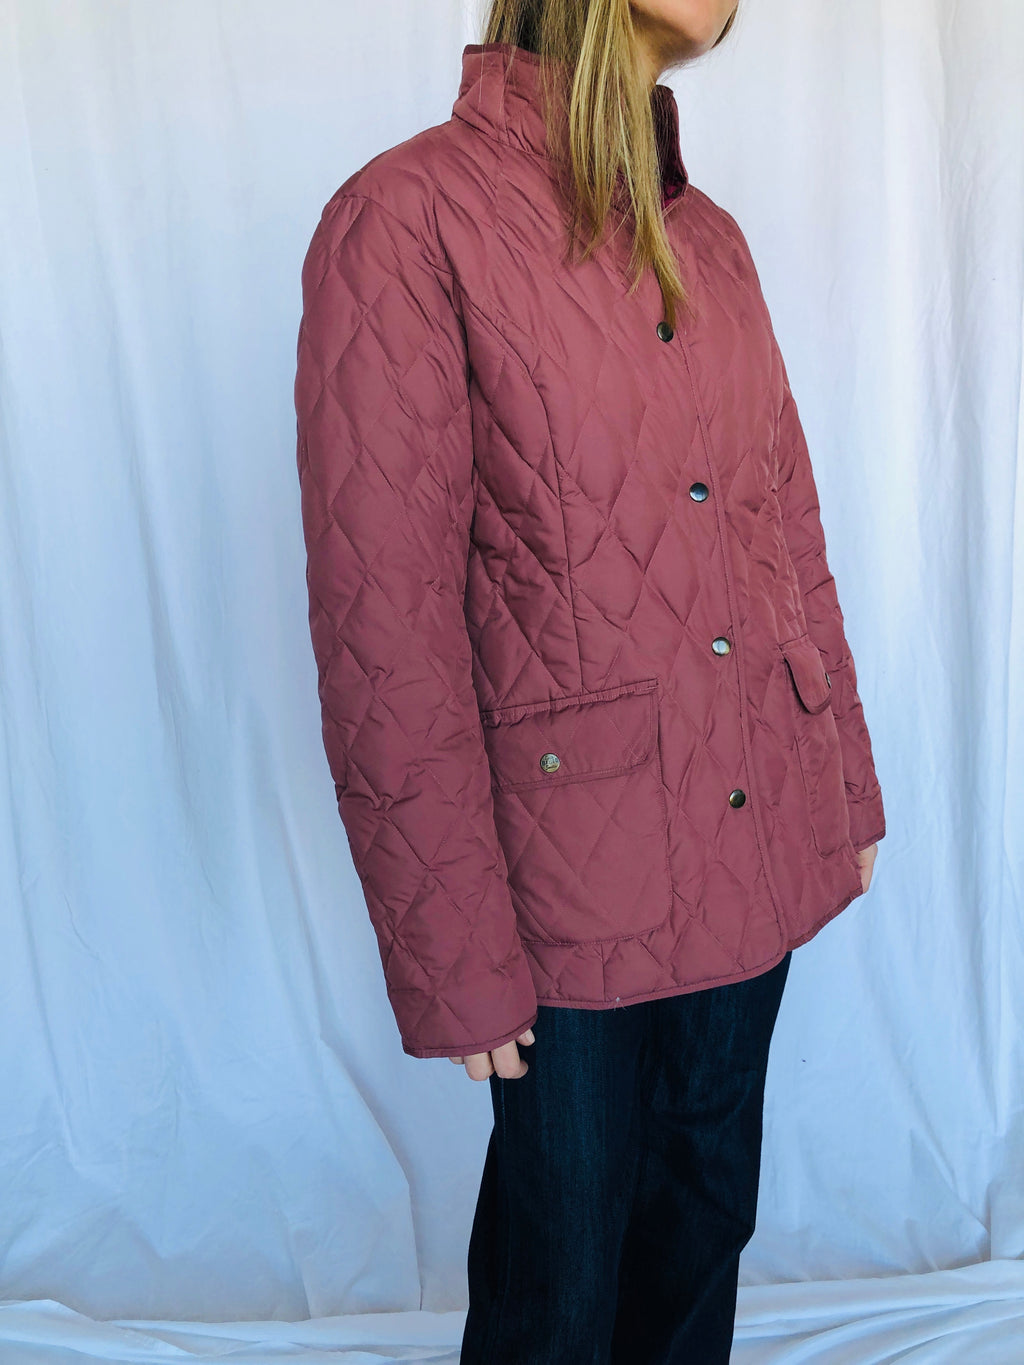 Eddie Bauer Mauve Lightweight Soft Premium Quality Goose Feather Down Coat Winter Jacket S